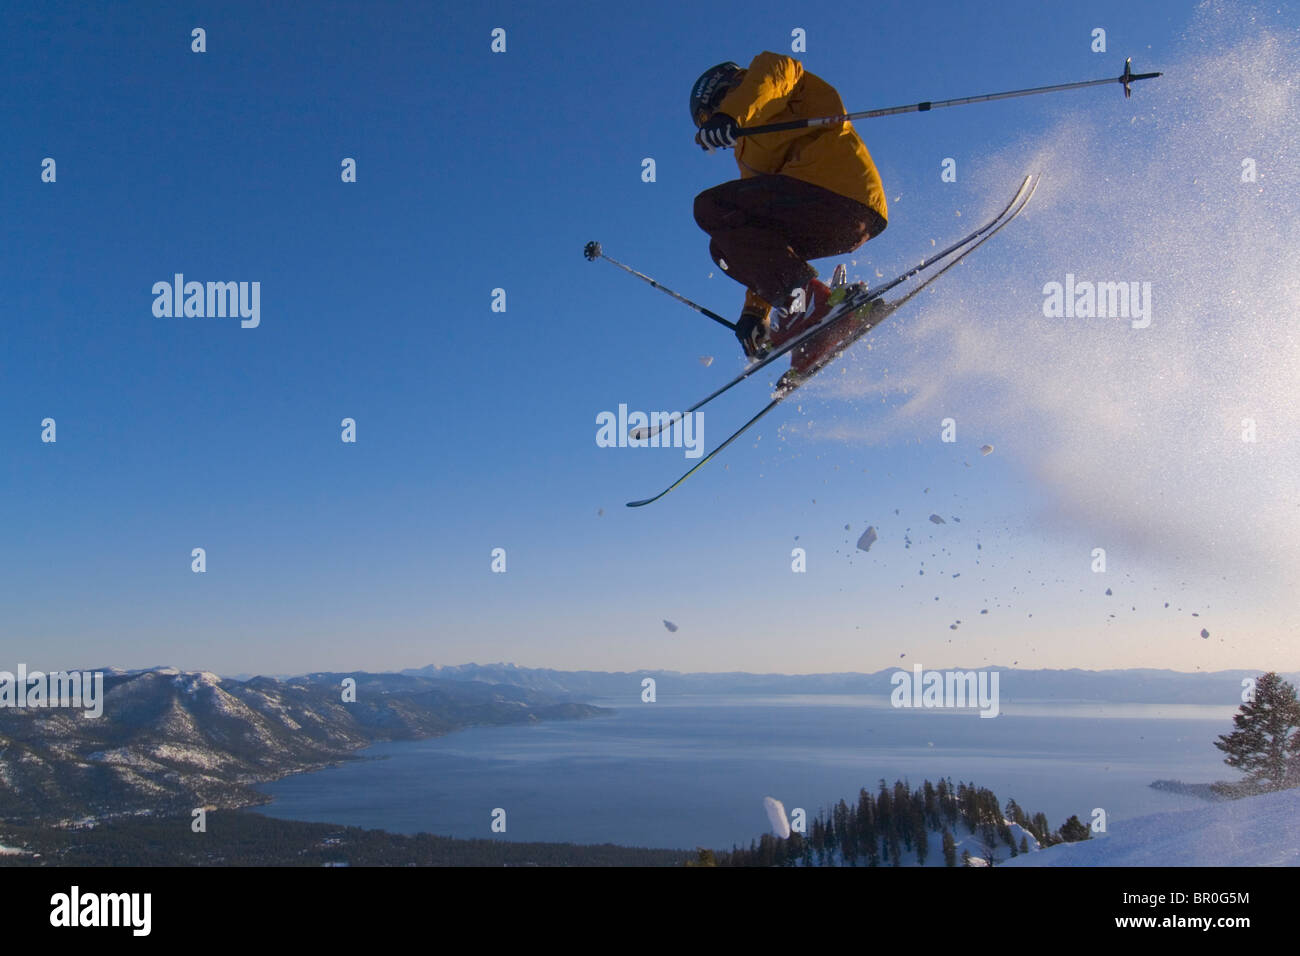 A man jumping on skis above Lake Tahoe in California. - Stock Image